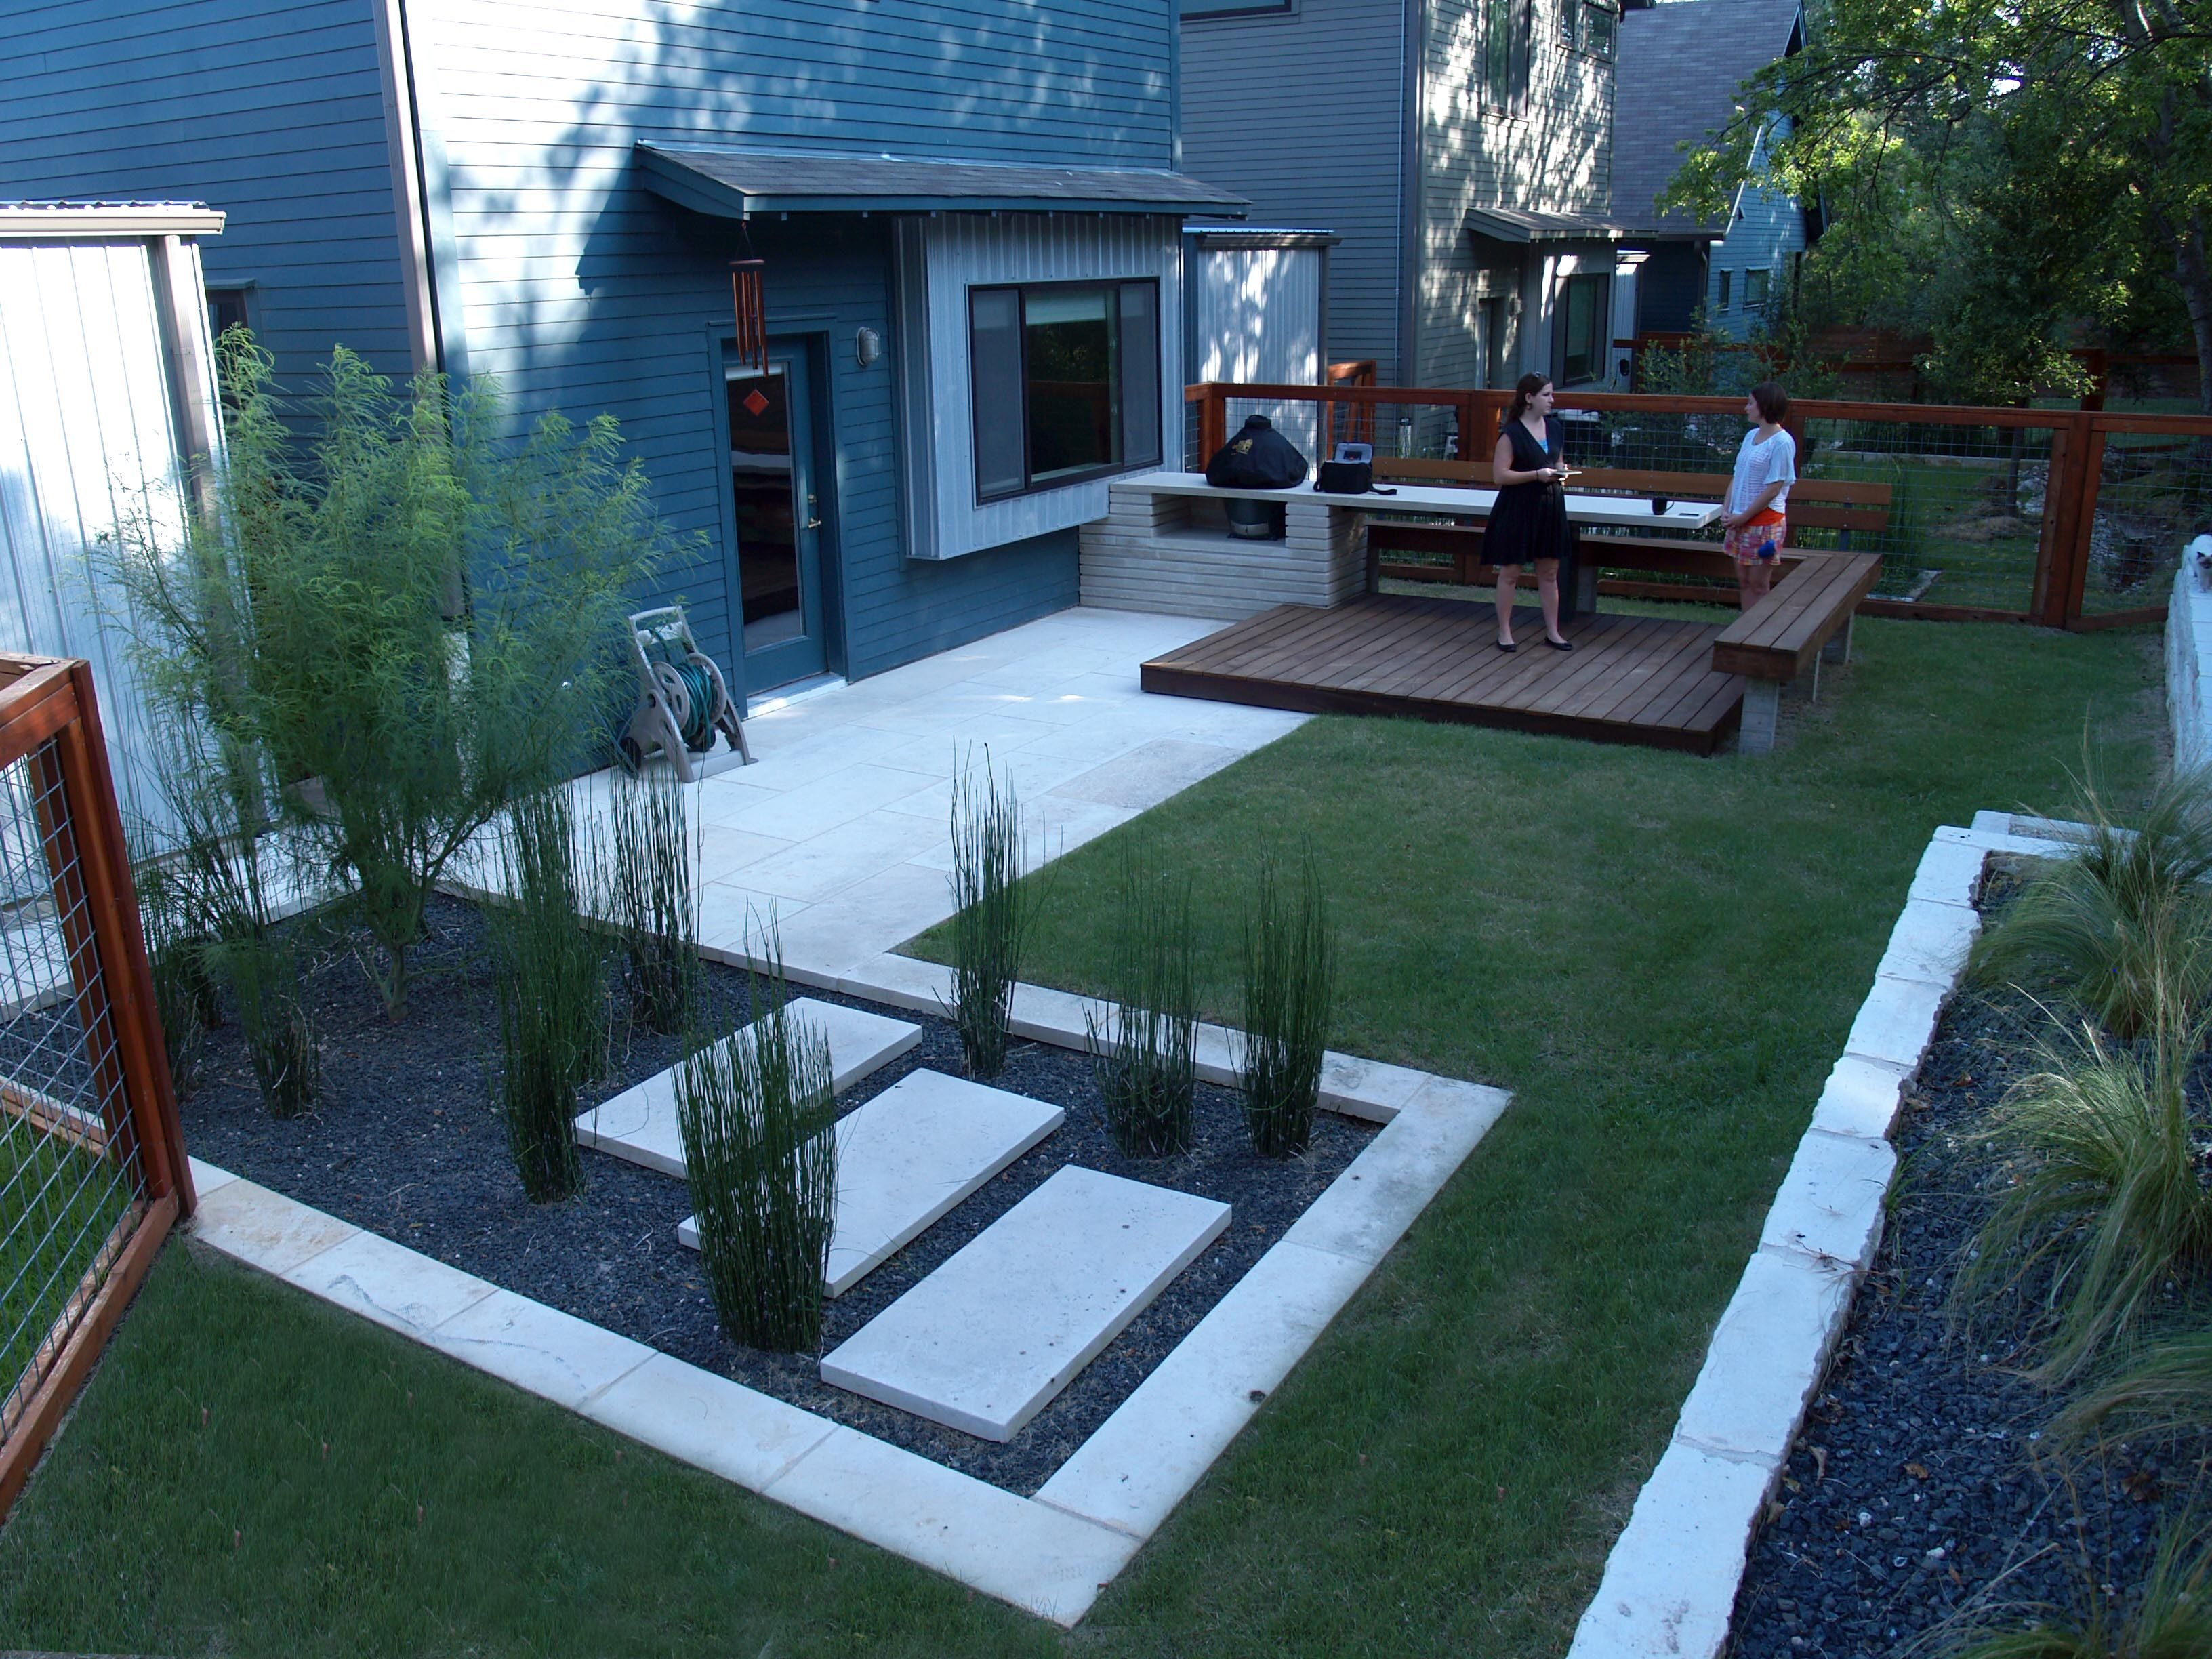 Backyard Design With Kitchen Dining And Living Modern Small Backyard inside Modern Backyard Ideas